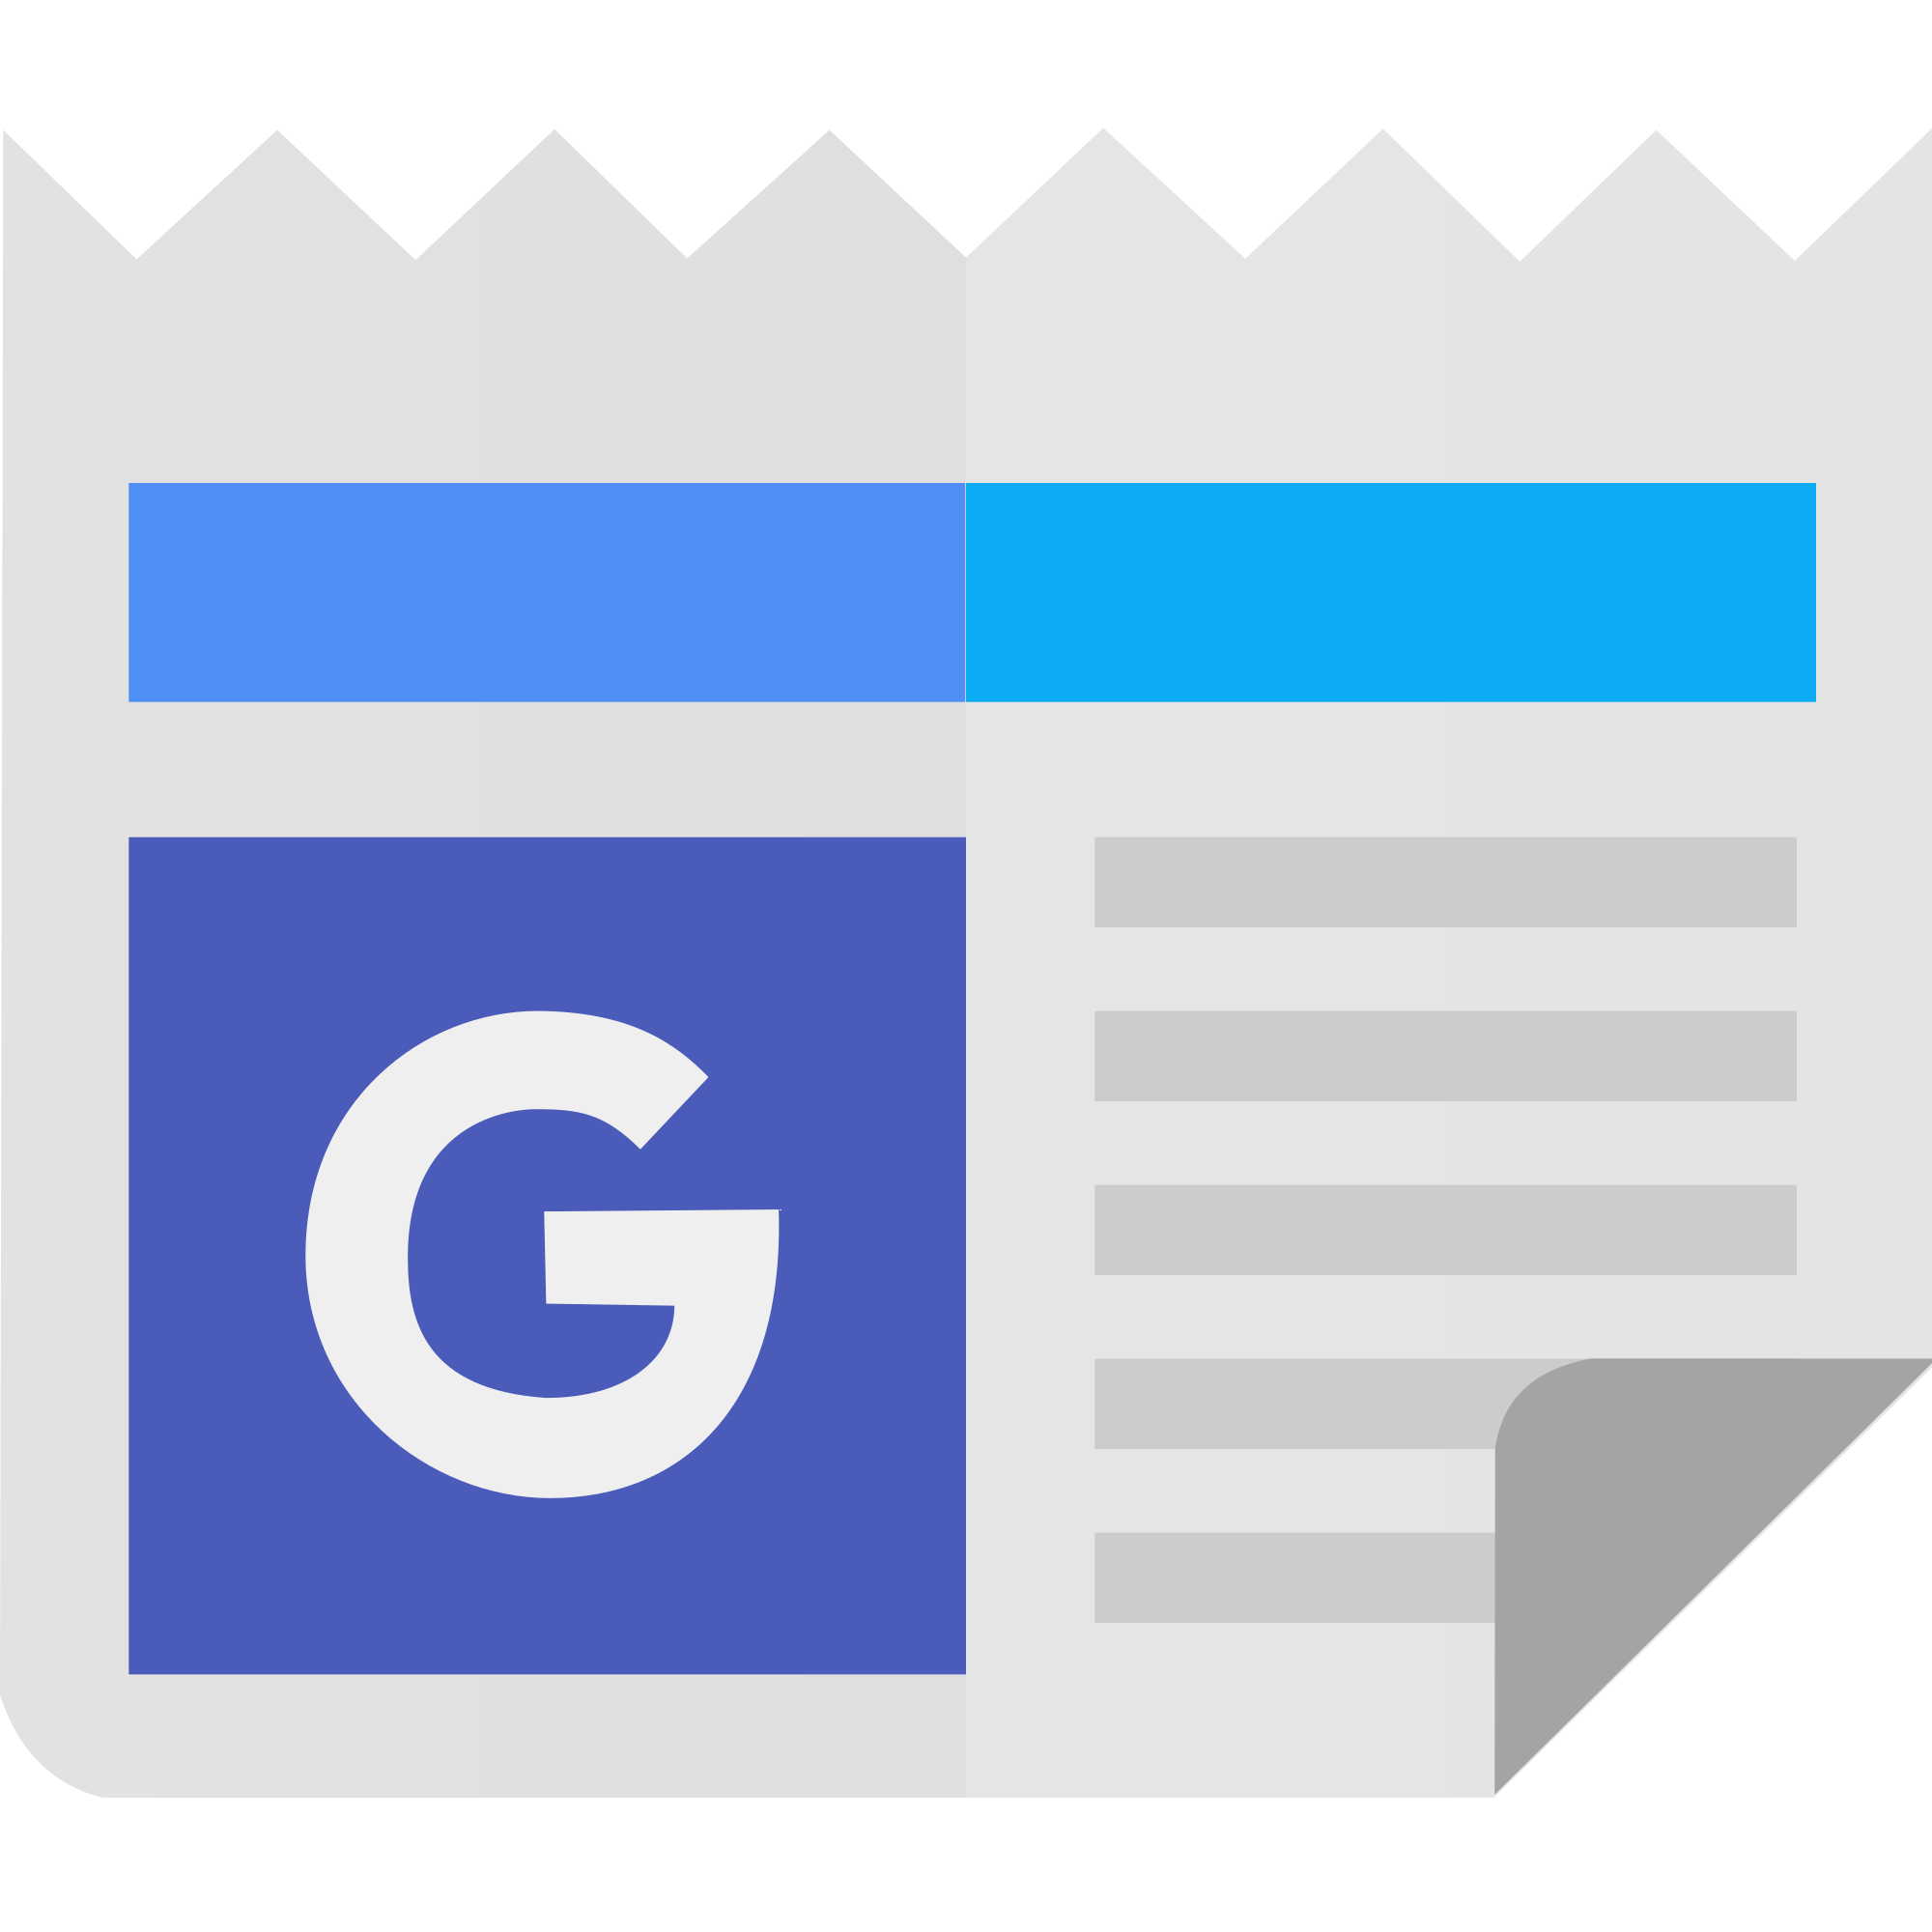 Google news icon png. File logo wikimedia commons